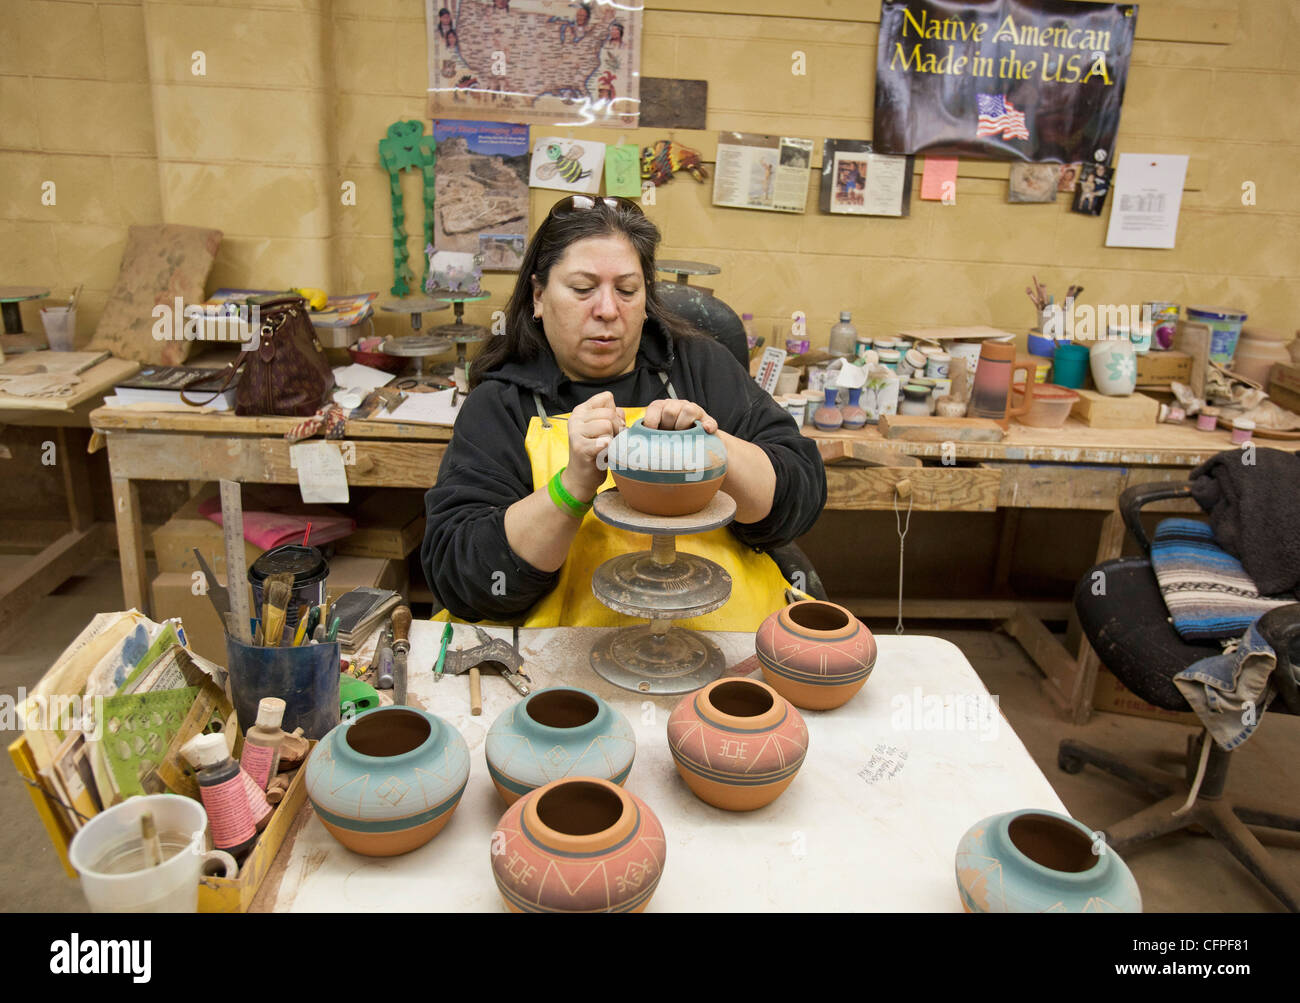 Rapid City, South Dakota - Jeanne High Elk, a member of the Cheyenne River Sioux, creates pottery at Sioux Pottery. - Stock Image